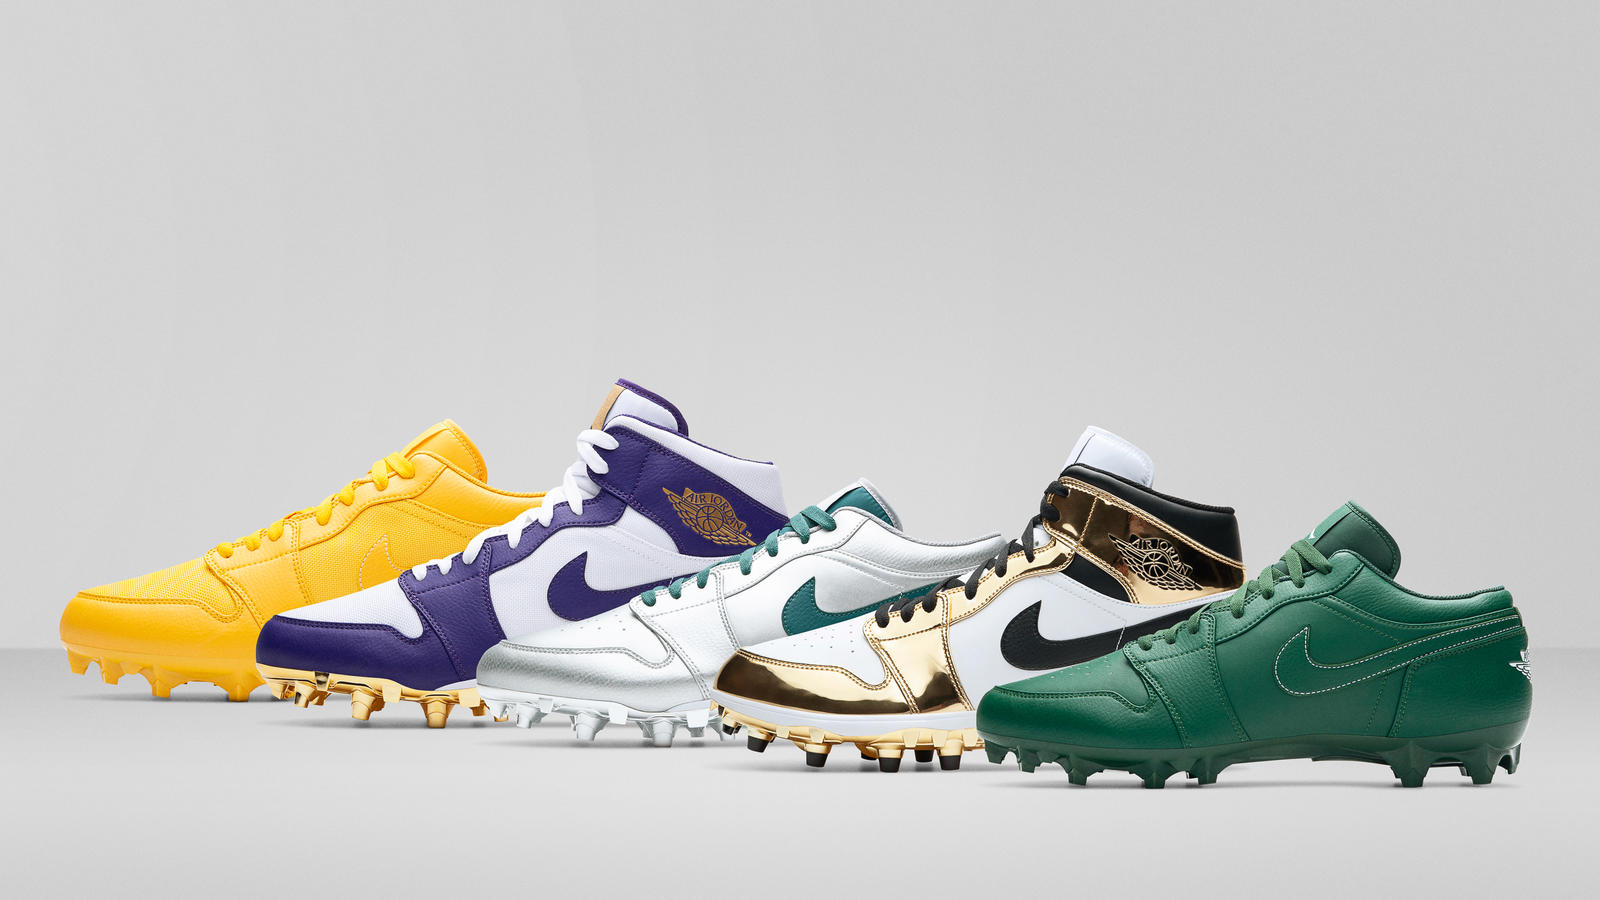 Jordan Brand Cleats NFL Opening Week 2019 5